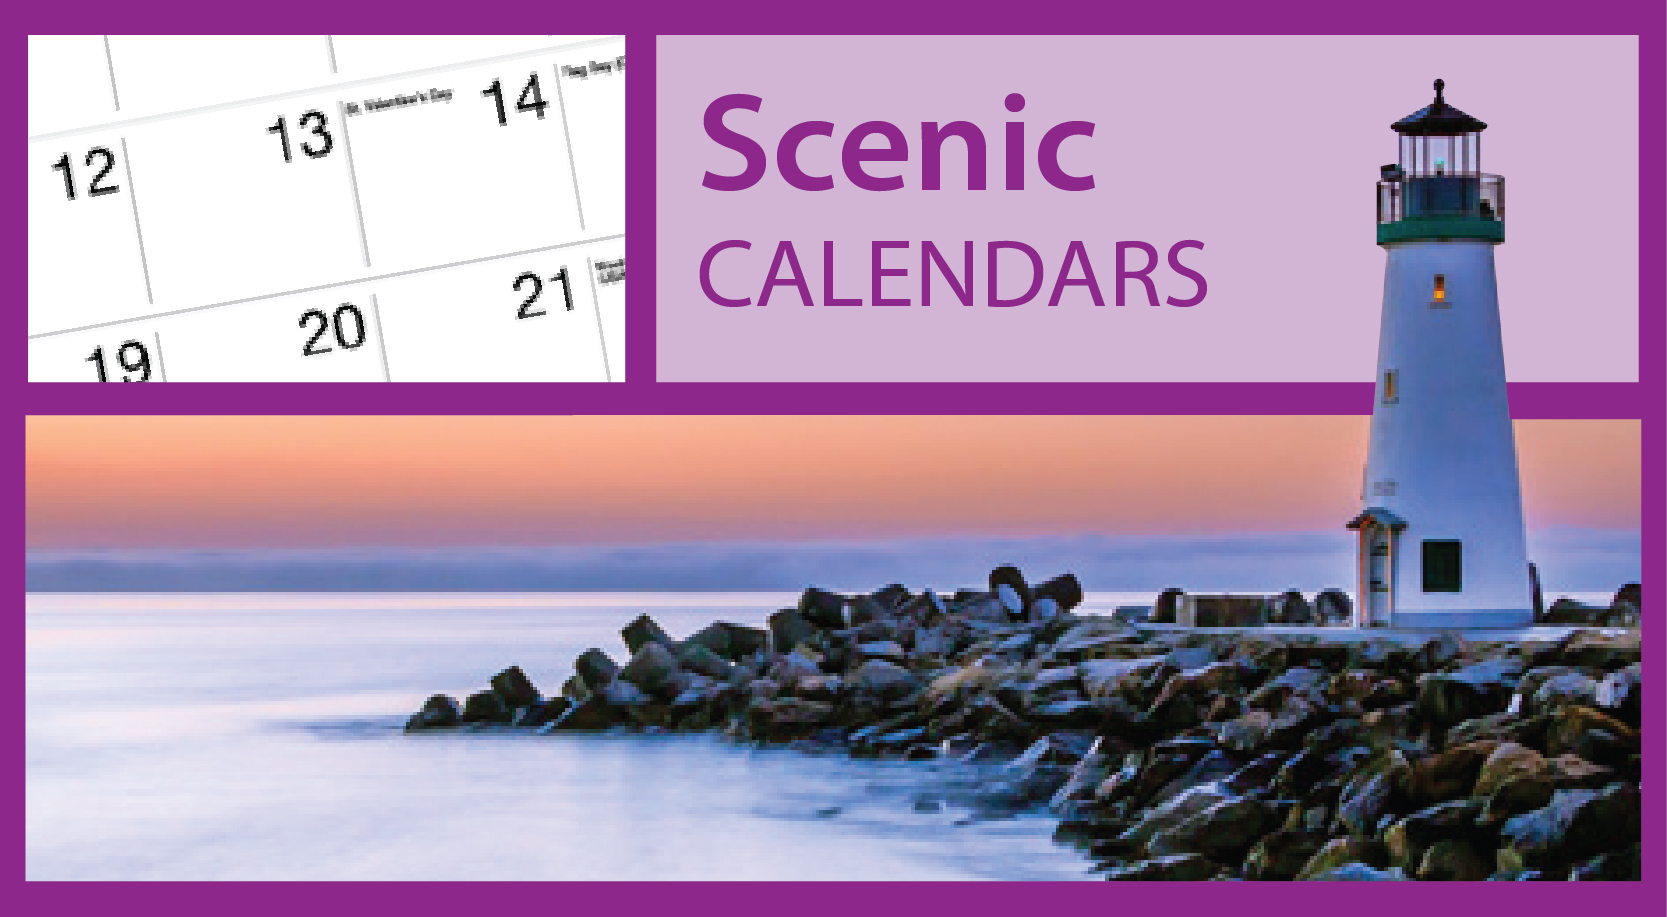 Promotional Scenic Calendars https://www.valuecalendars.com/products/standard_imprinted_calendars/promotional_scenic_calendars